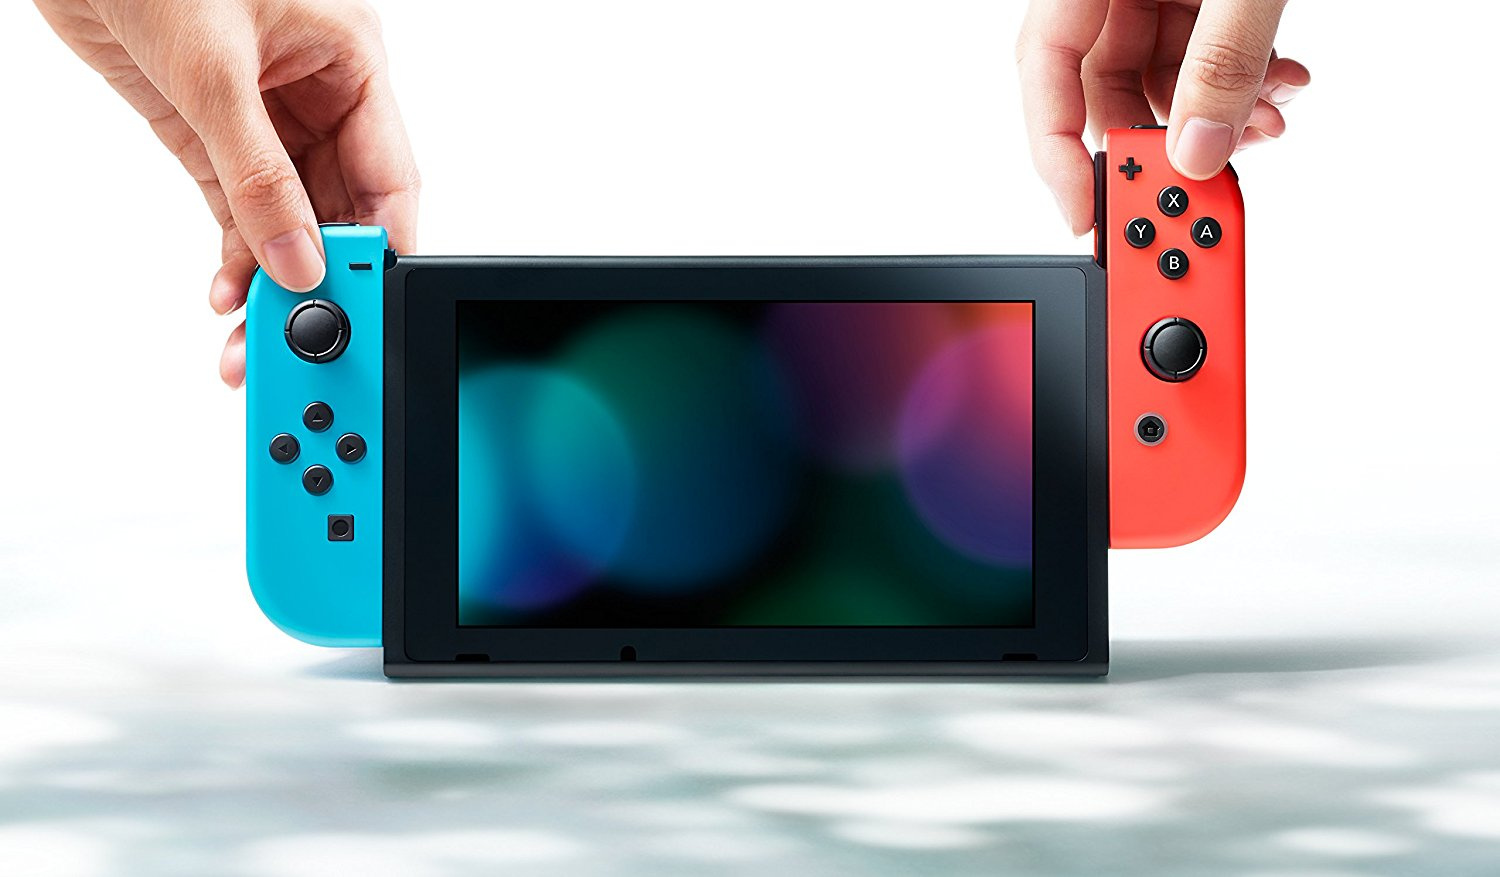 [H]ardOCP: Nintendo President Says Switch Successor, Price Cut Not Currently Being Considered